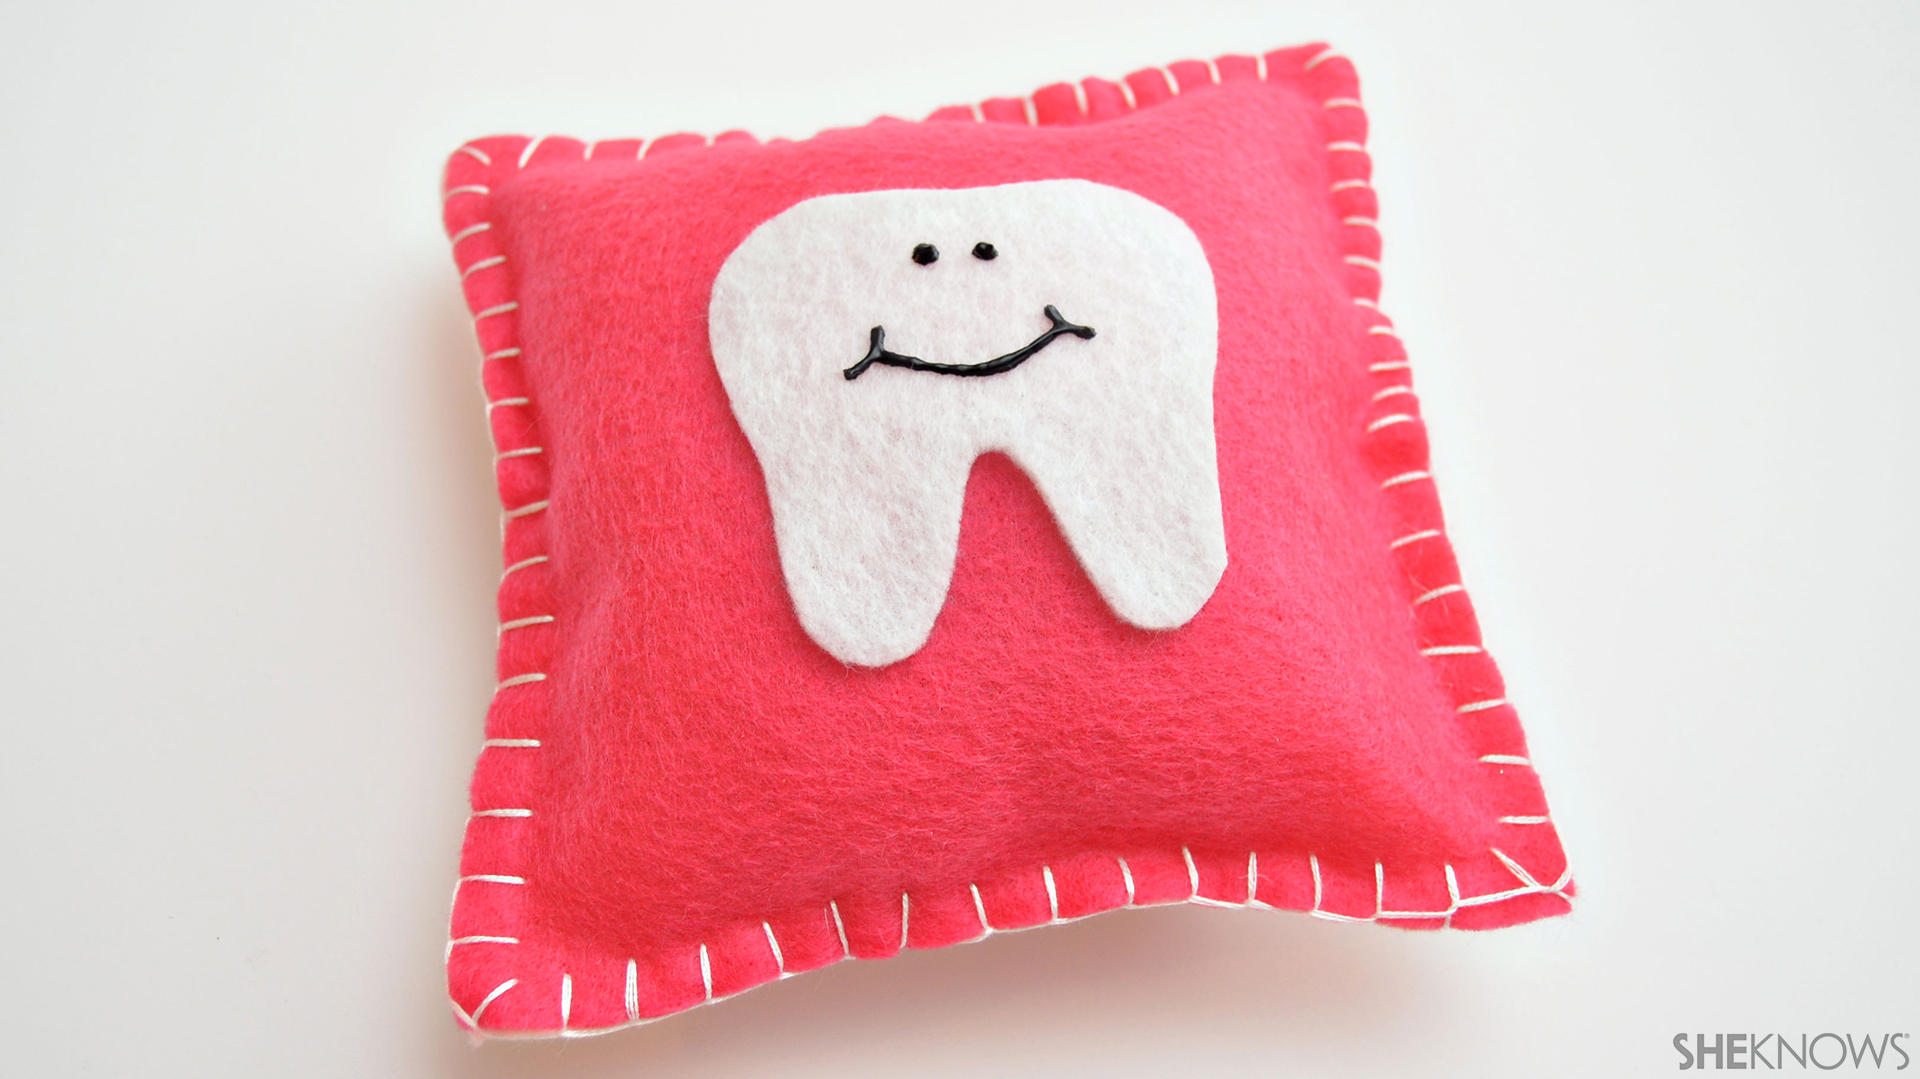 Tooth fairy pillow | Sheknows.com - final product